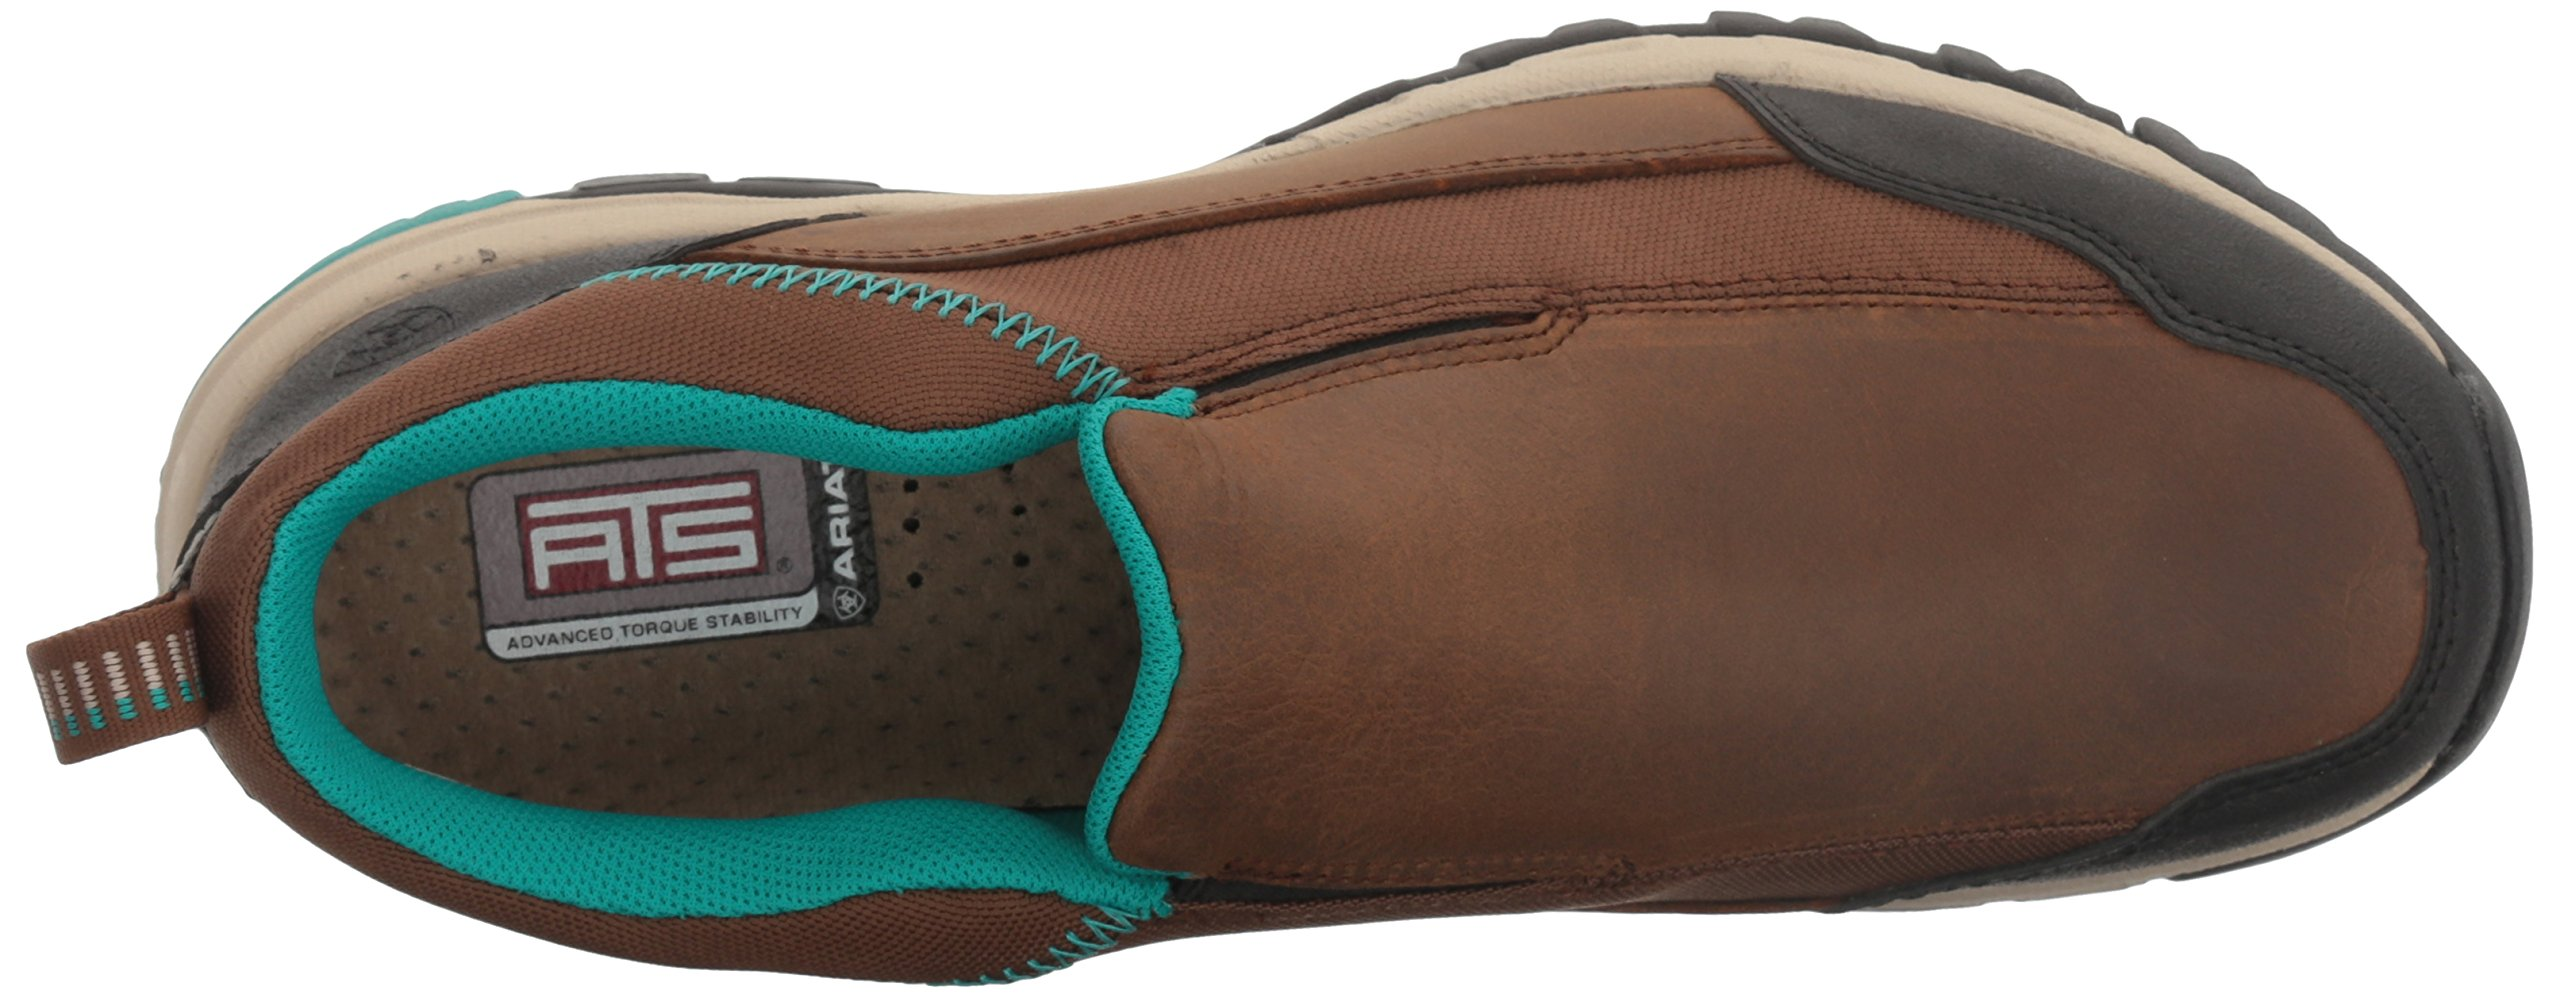 Ariat Women's Skyline Slip-on Hiking Shoe, Taupe, 8 B US by Ariat (Image #8)